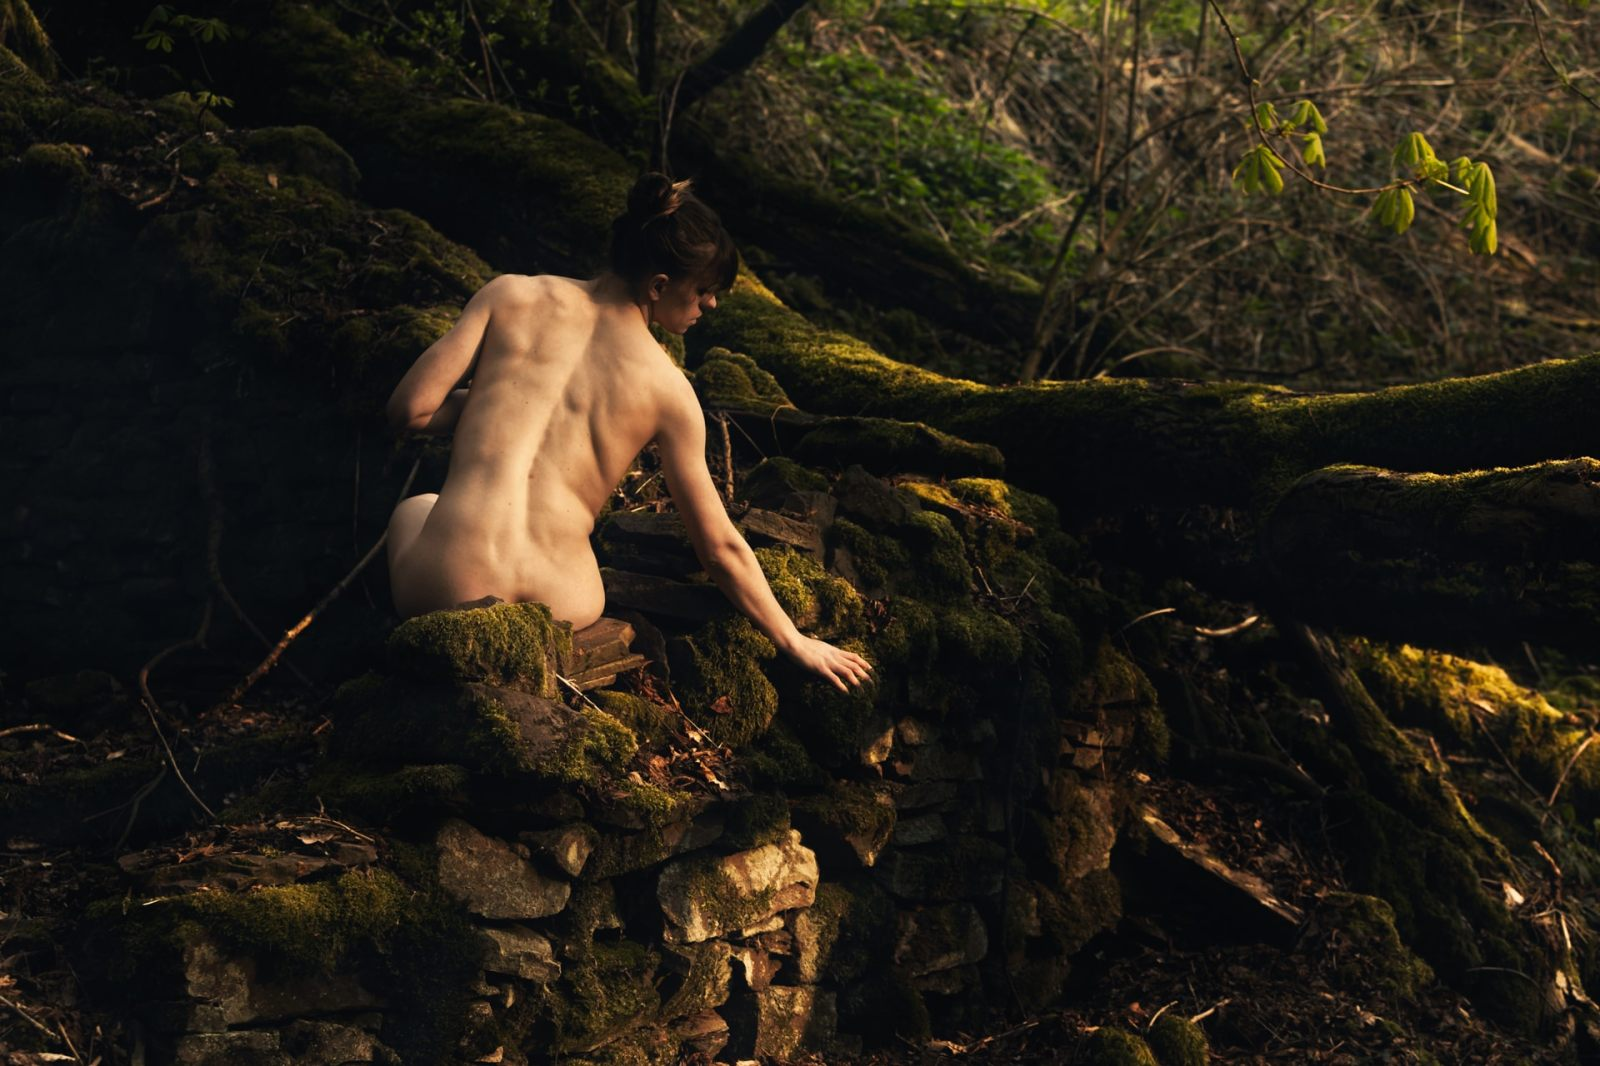 forest-and-nudes-III-